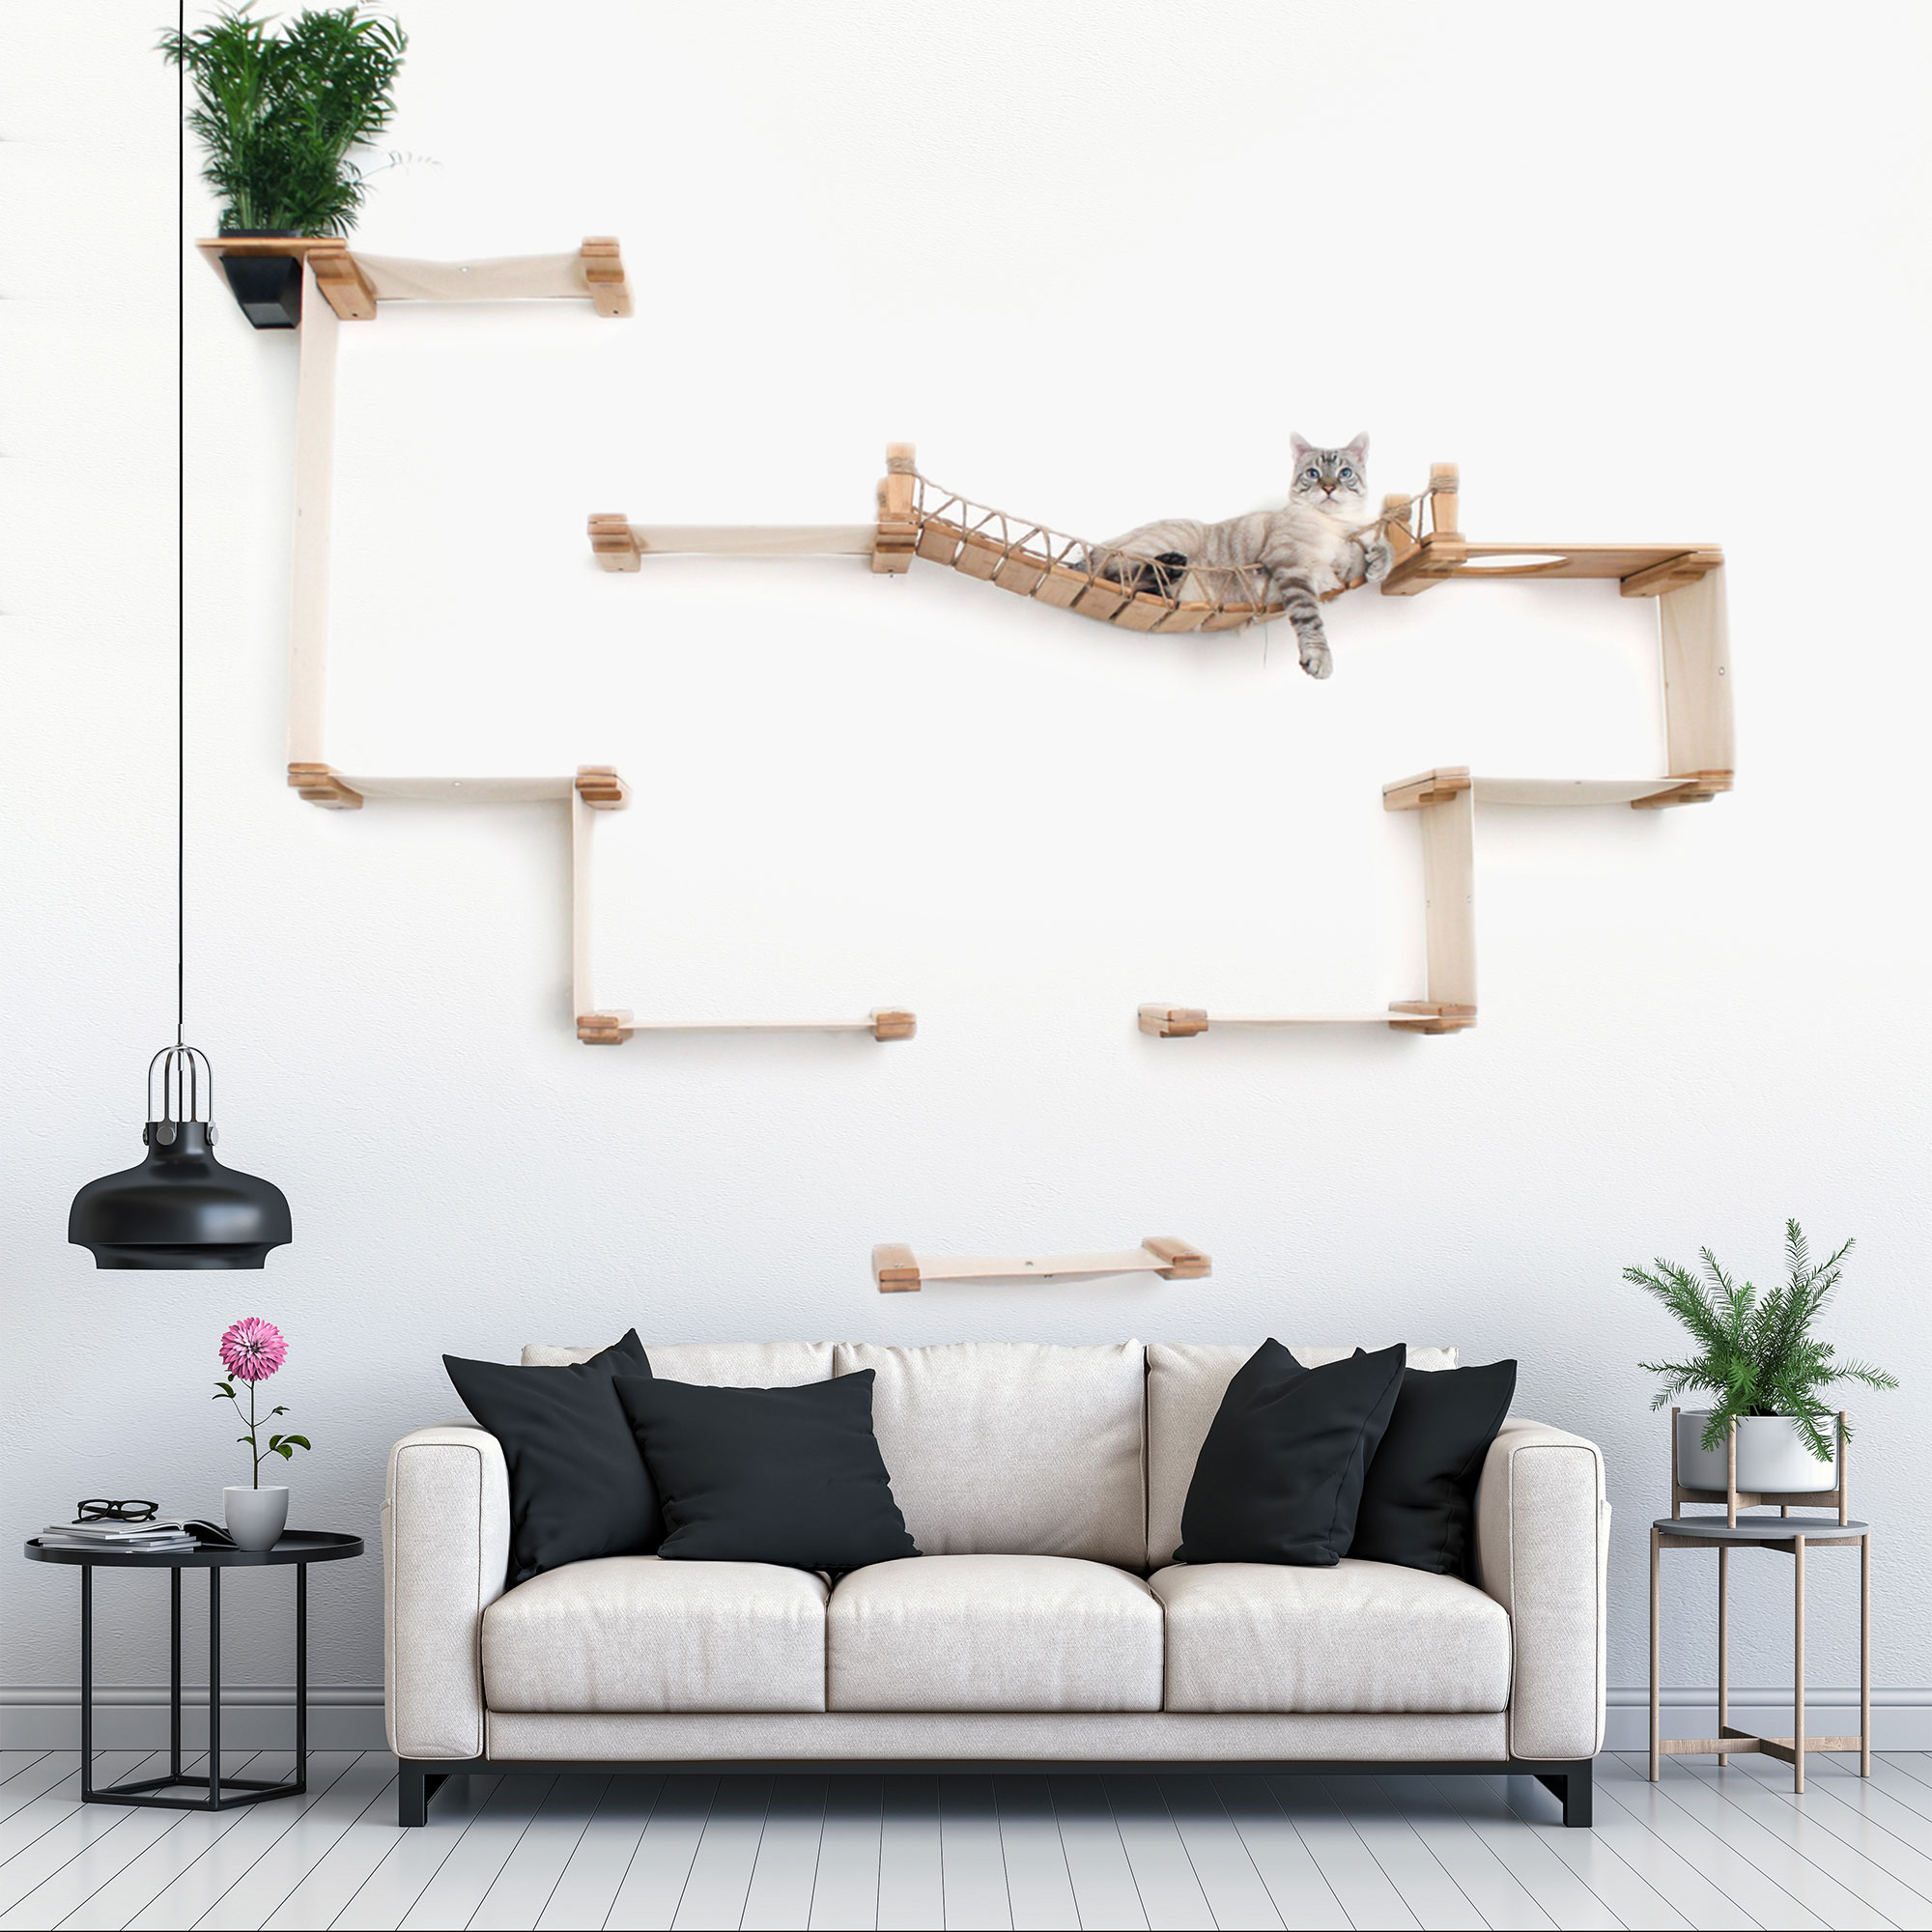 This photo displays our cat lounging on the Temple complex in a living room setting. This image shows the Temple in Natural, a light brown stain, and has Natural fabric, a light tan color.